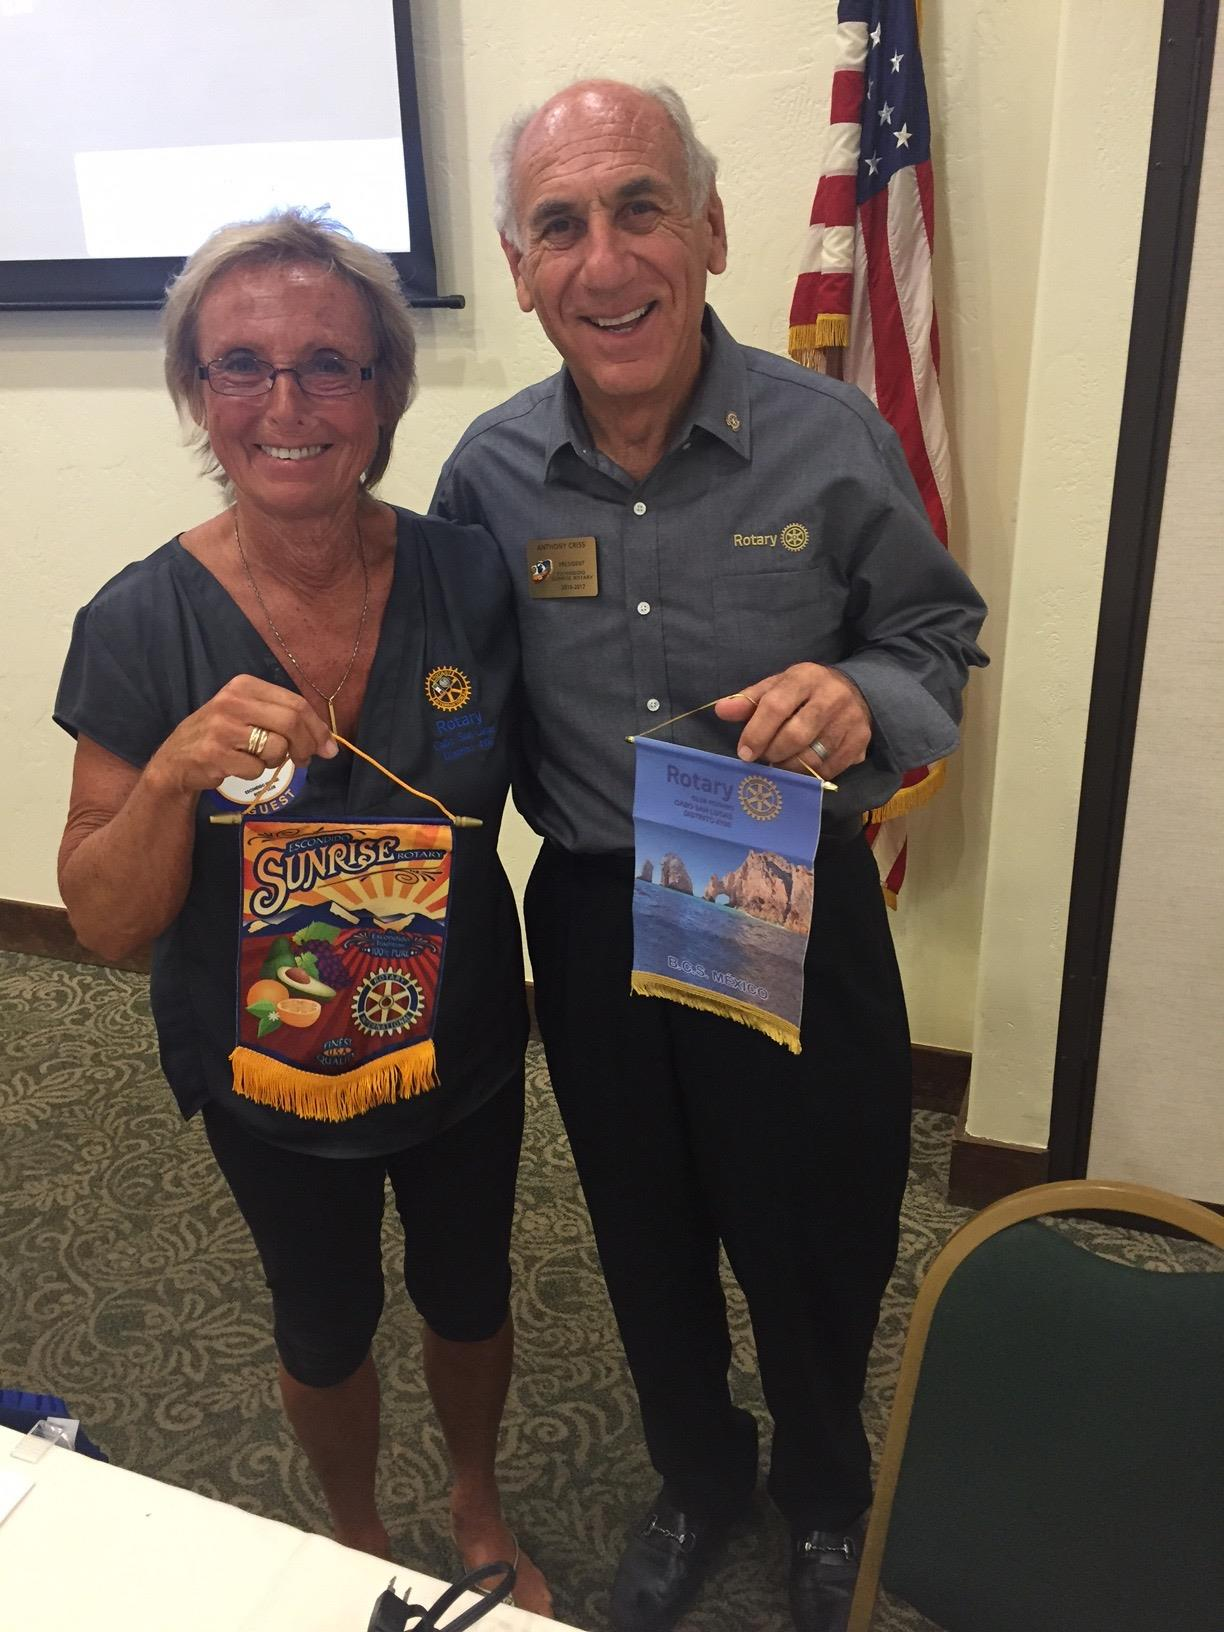 stories rotary club of escondido sunrise ardyth ruth was ing from the cabo san lucas club she brought a banner to exchange president tony